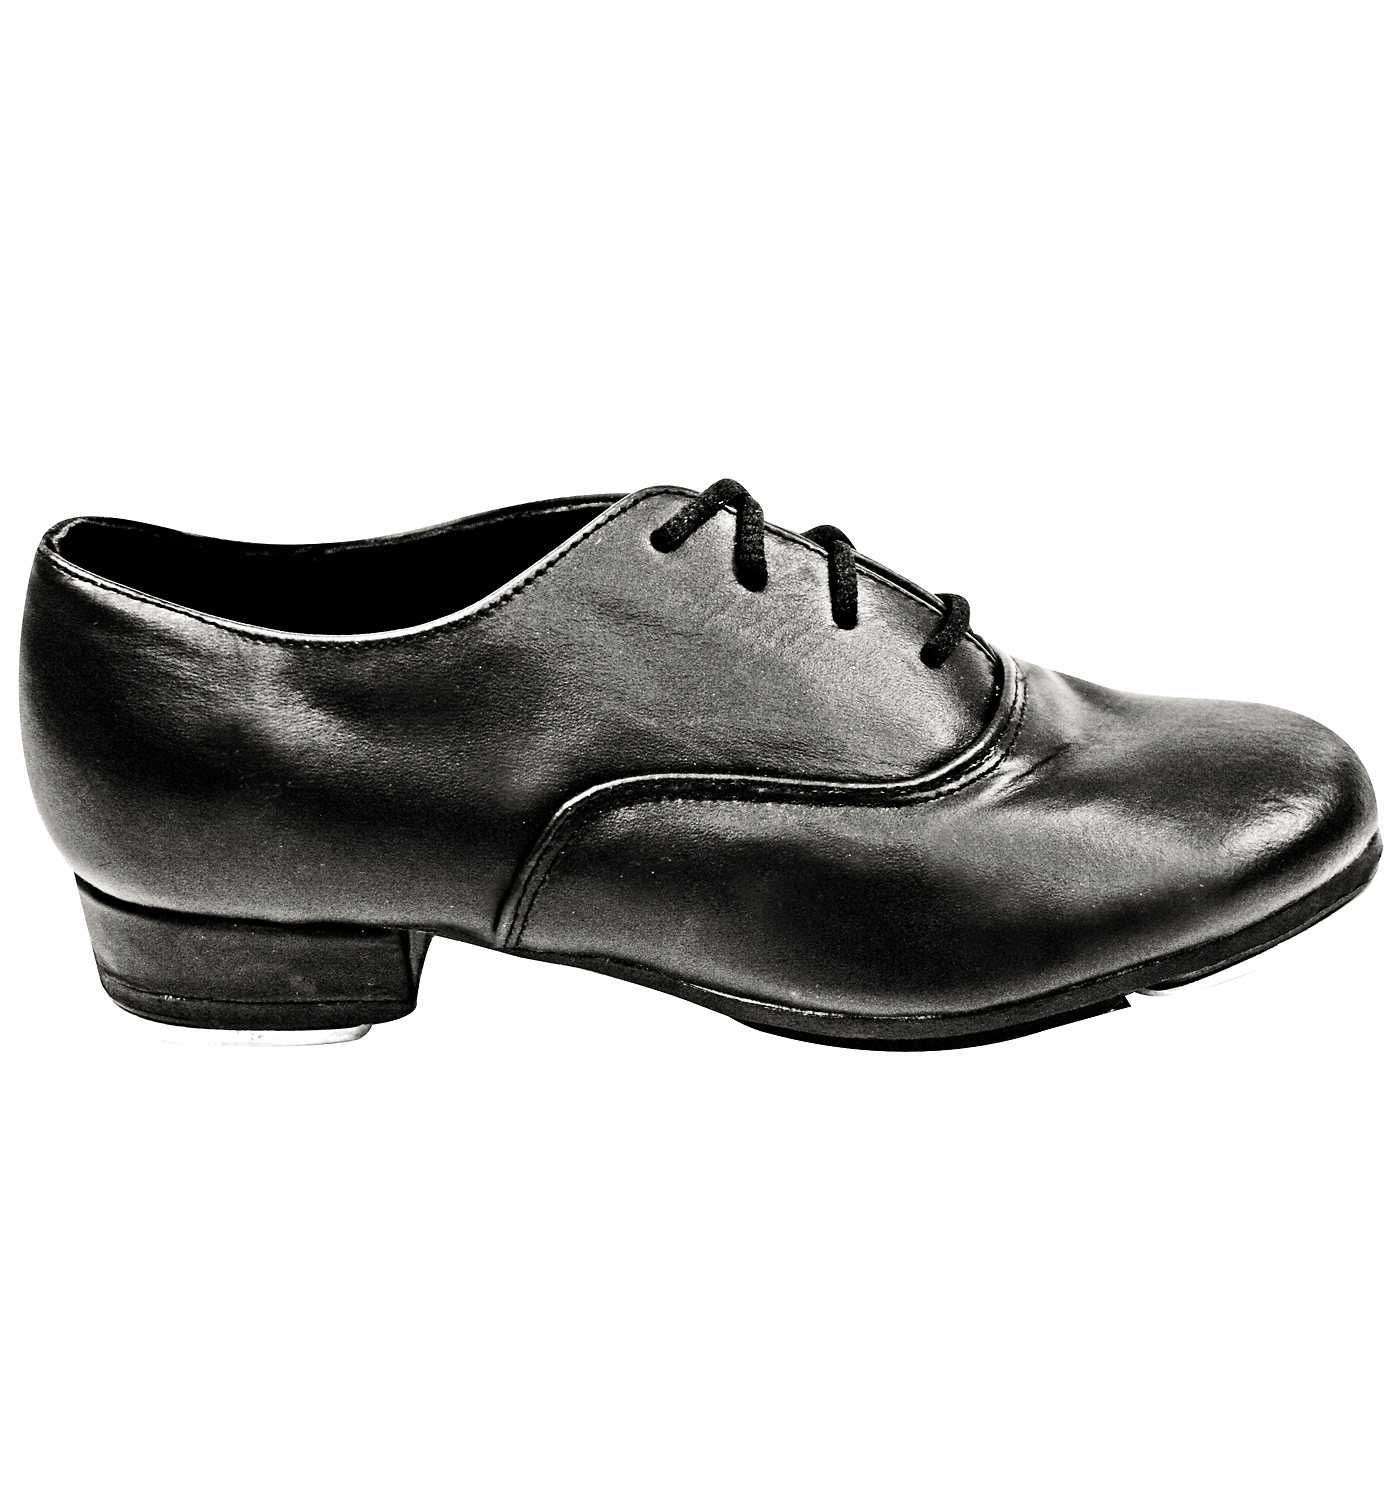 trendy trends 1 very fine shoes 80 wear moi 3 shop by color shop by